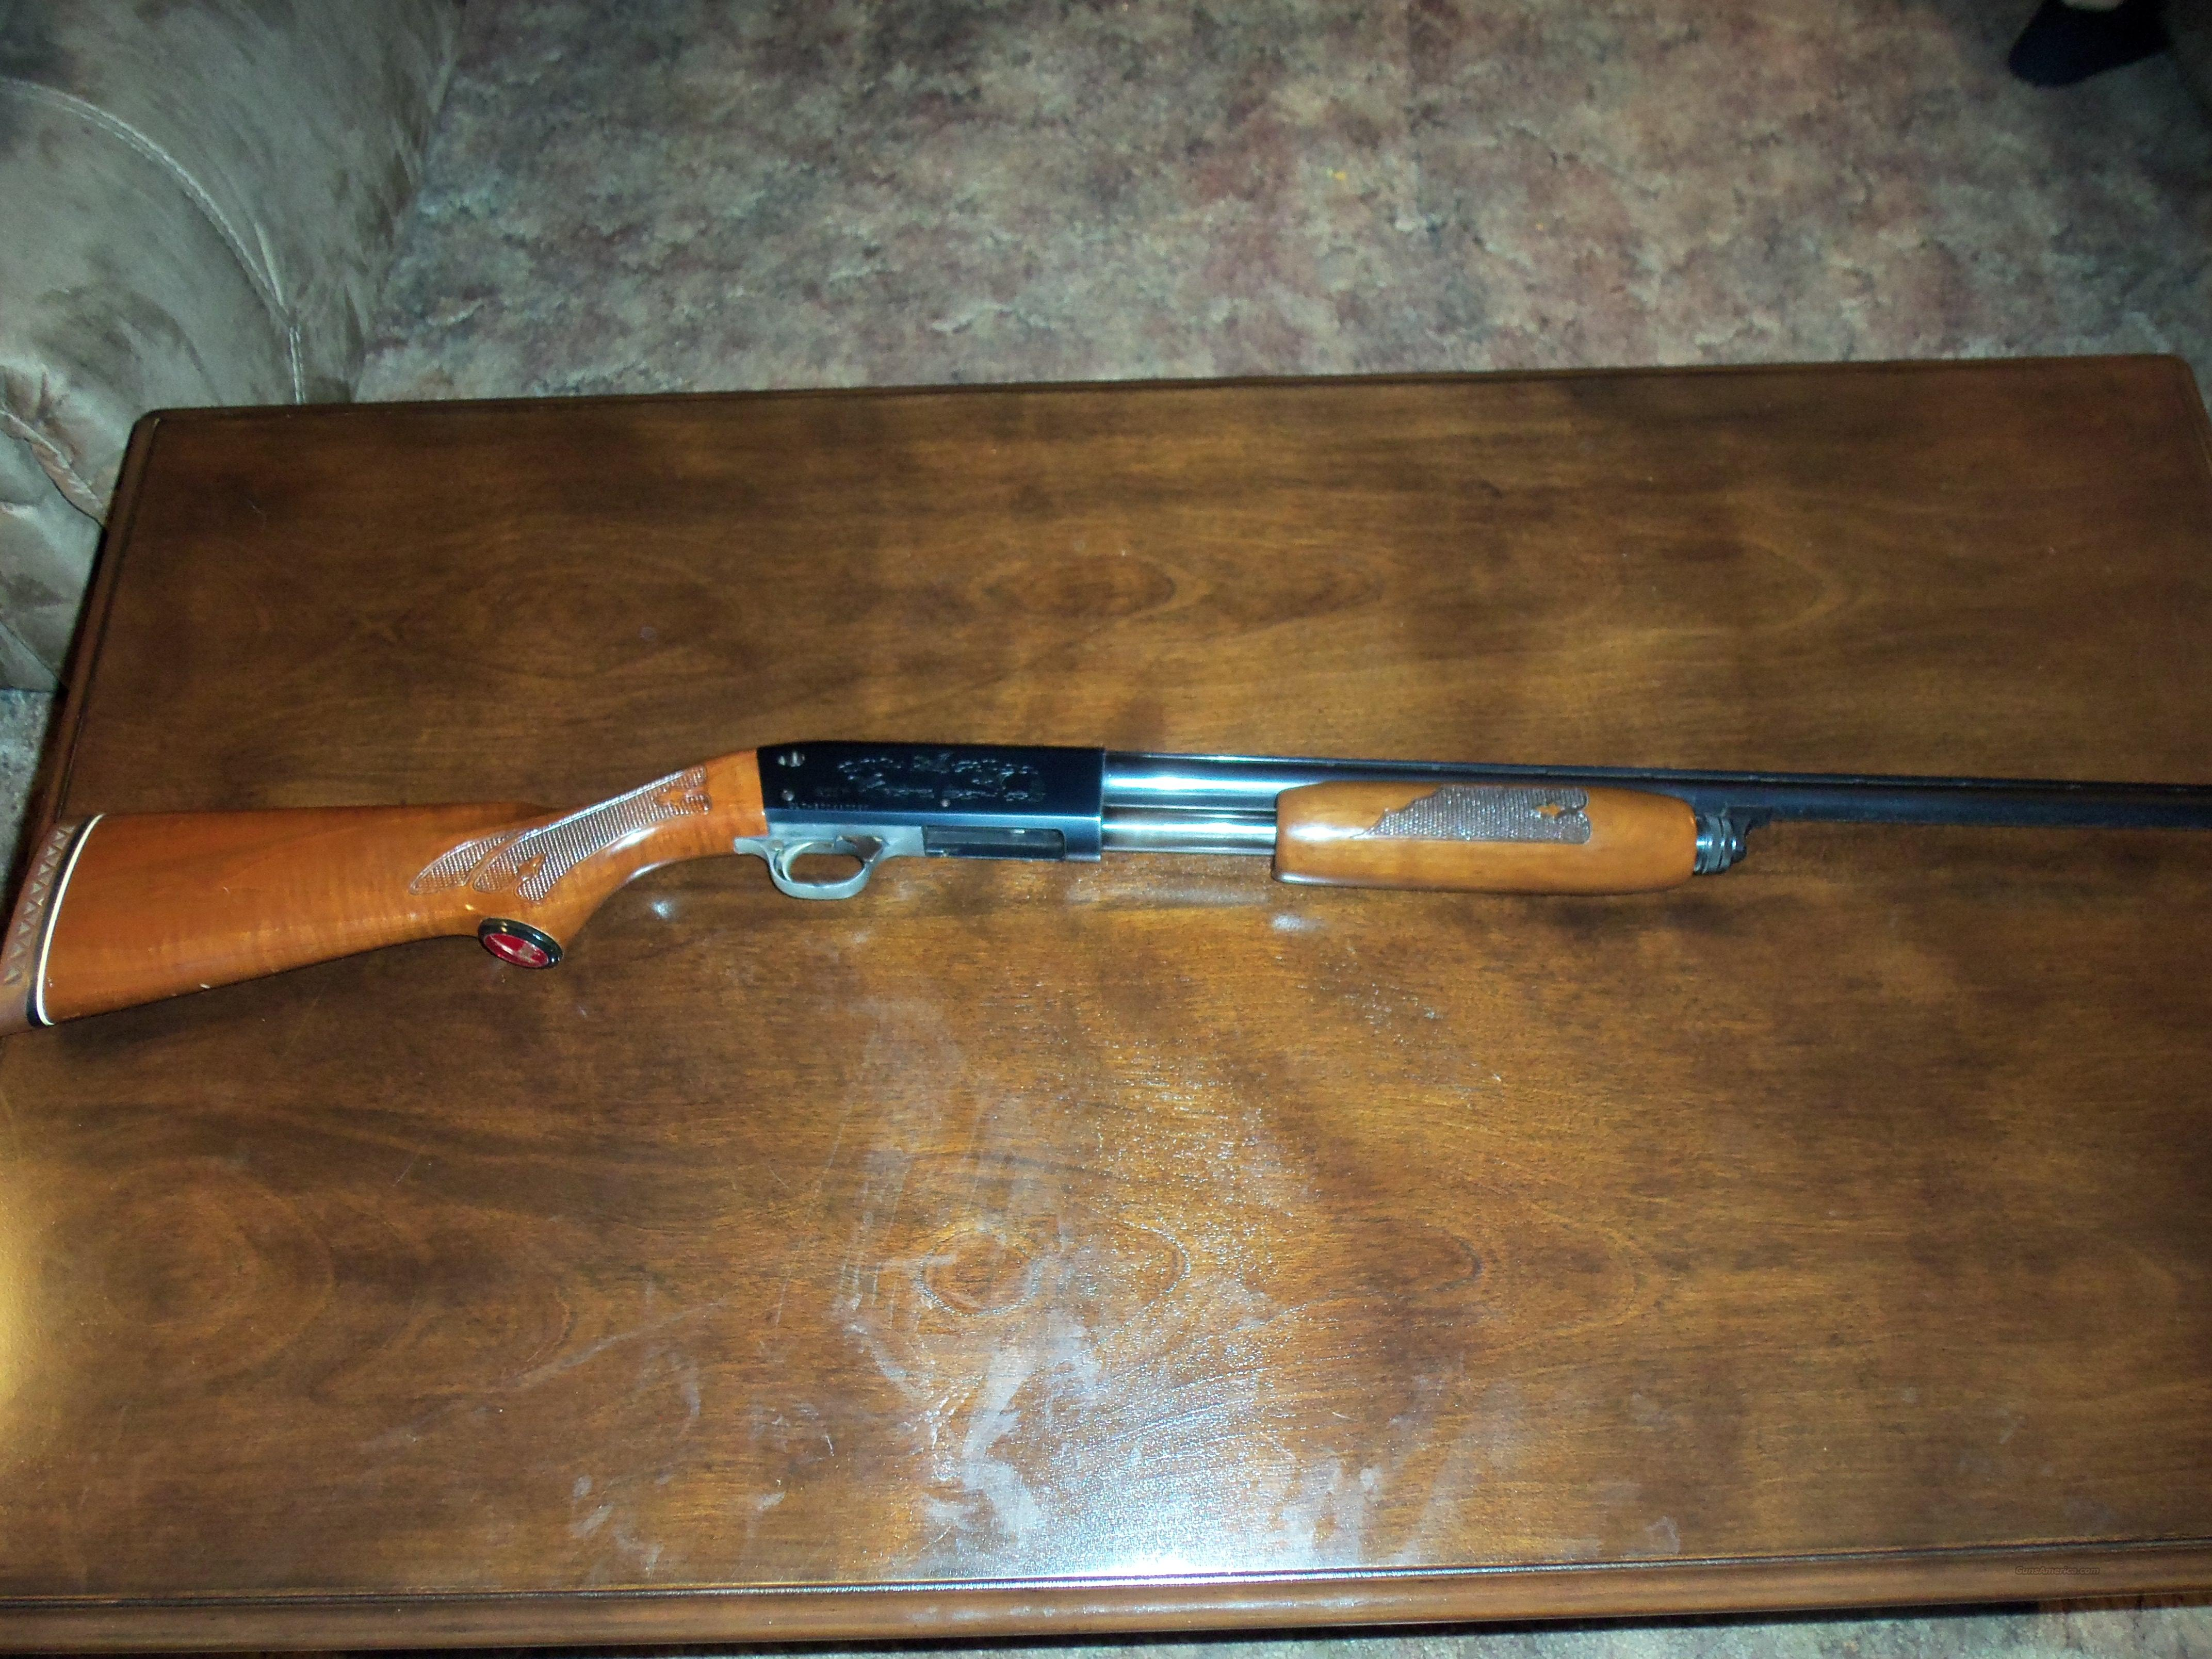 Ithaca Model 37 Ultralite 20 gauge Shotgun 2 3/4  Guns > Shotguns > Ithaca Shotguns > Pump